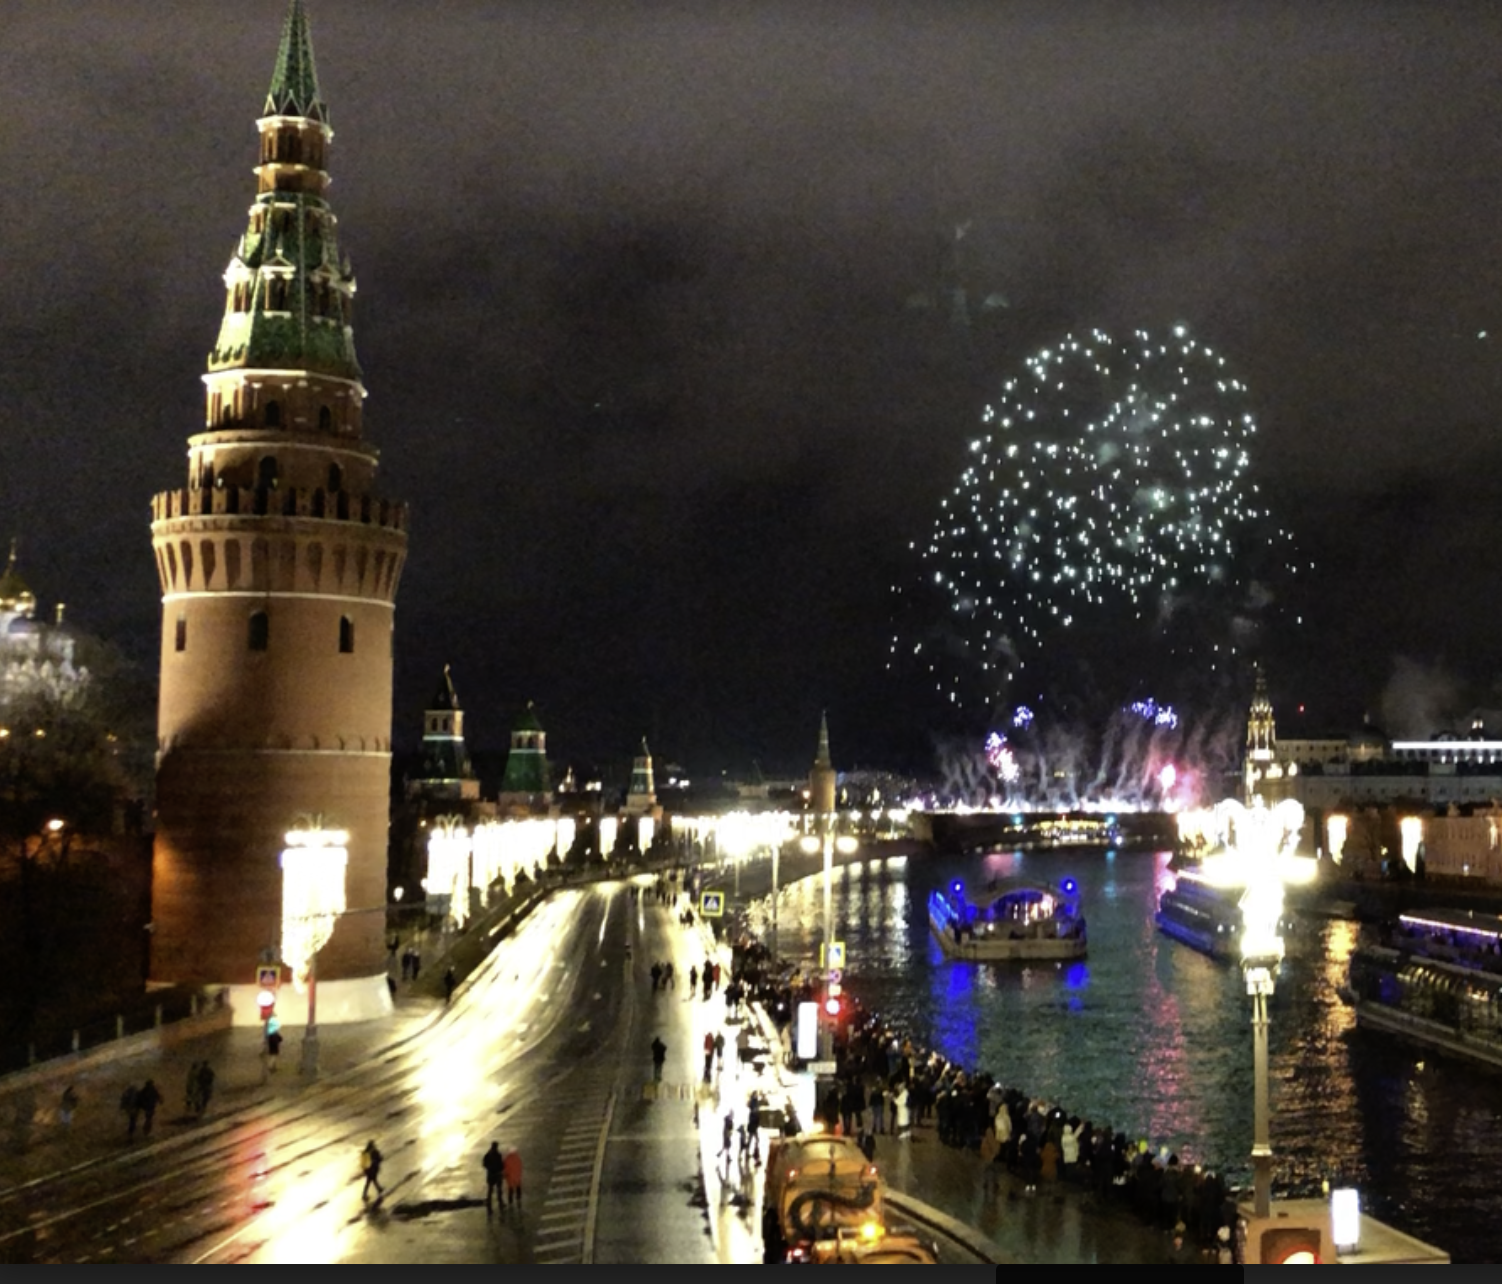 As New Years is a very significant part of Russian culture, fireworks could be heard for many nights after the holiday.